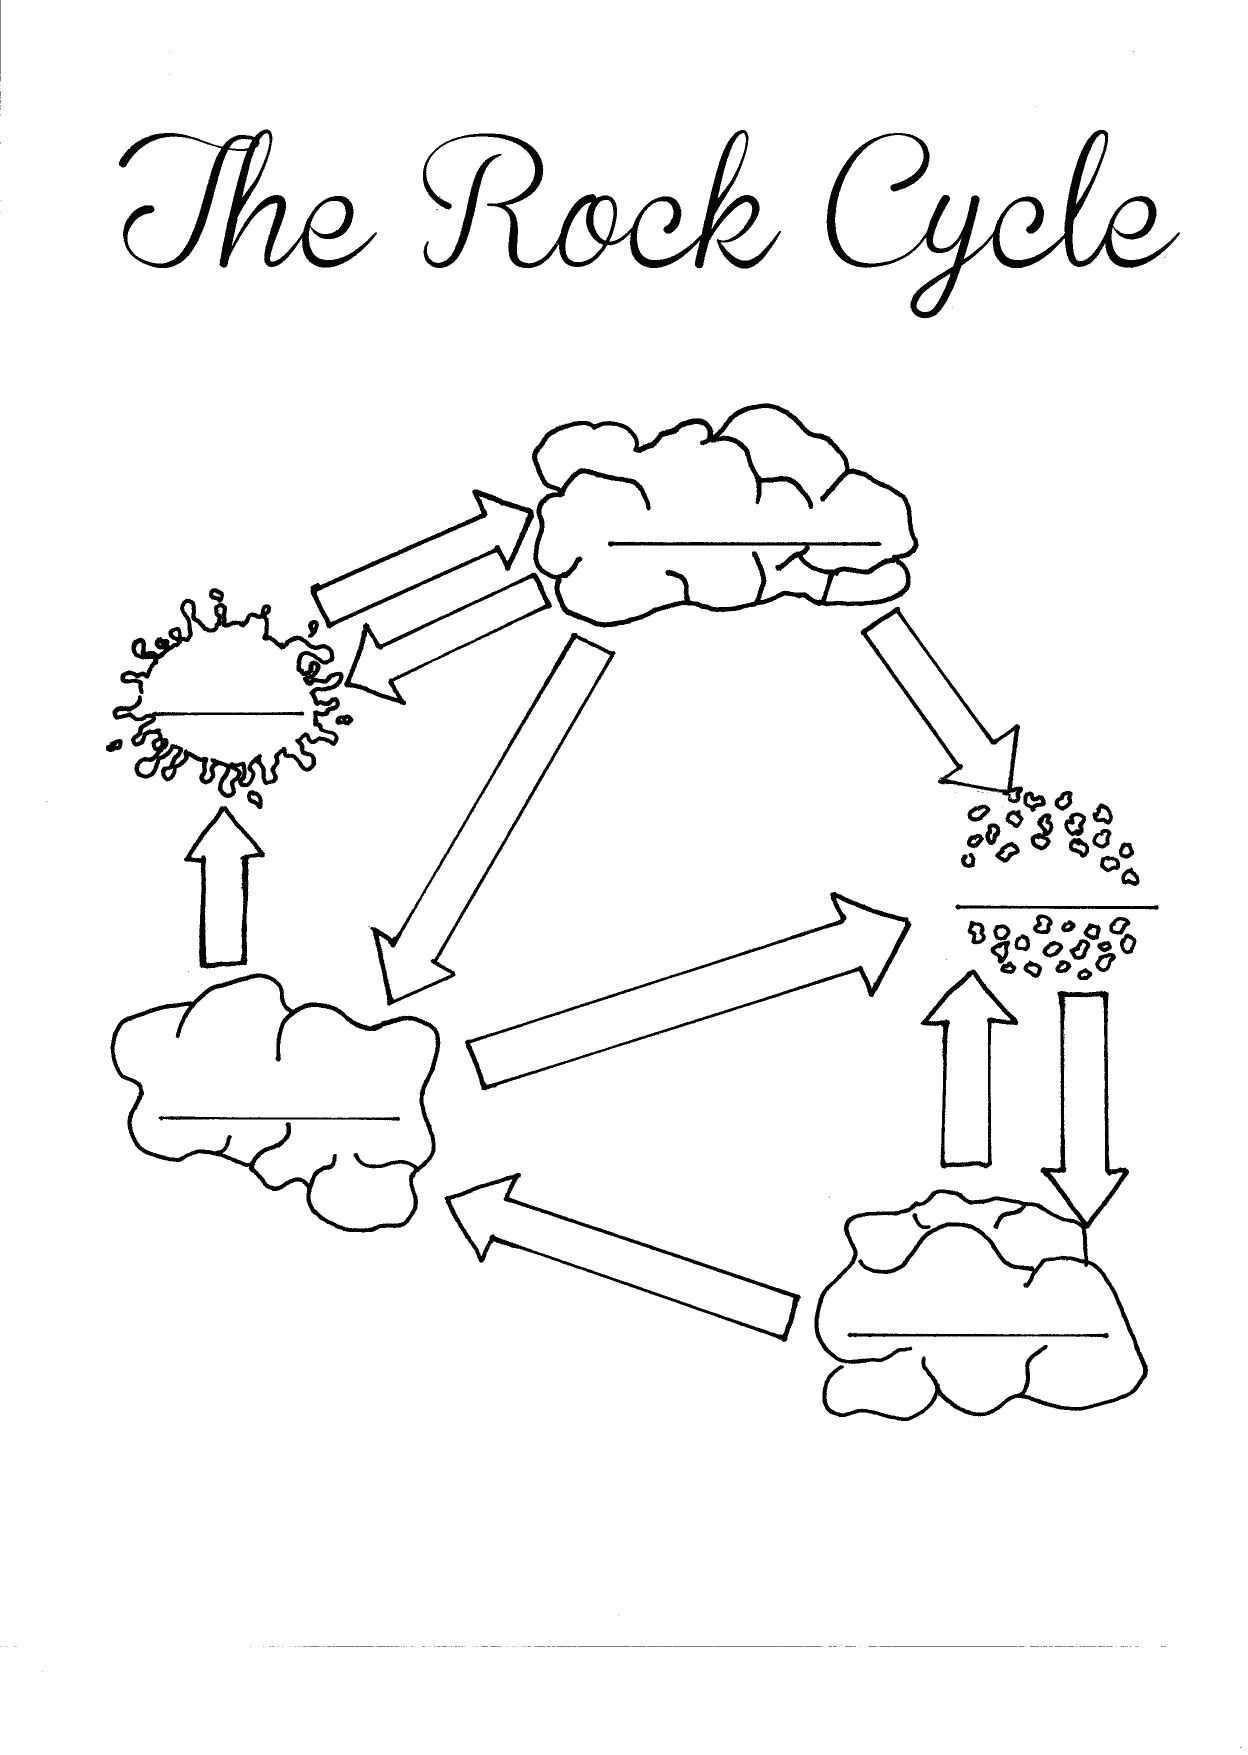 The Rock Cycle Blank Worksheet  Fill in as you talk about or go through the rock cycle using